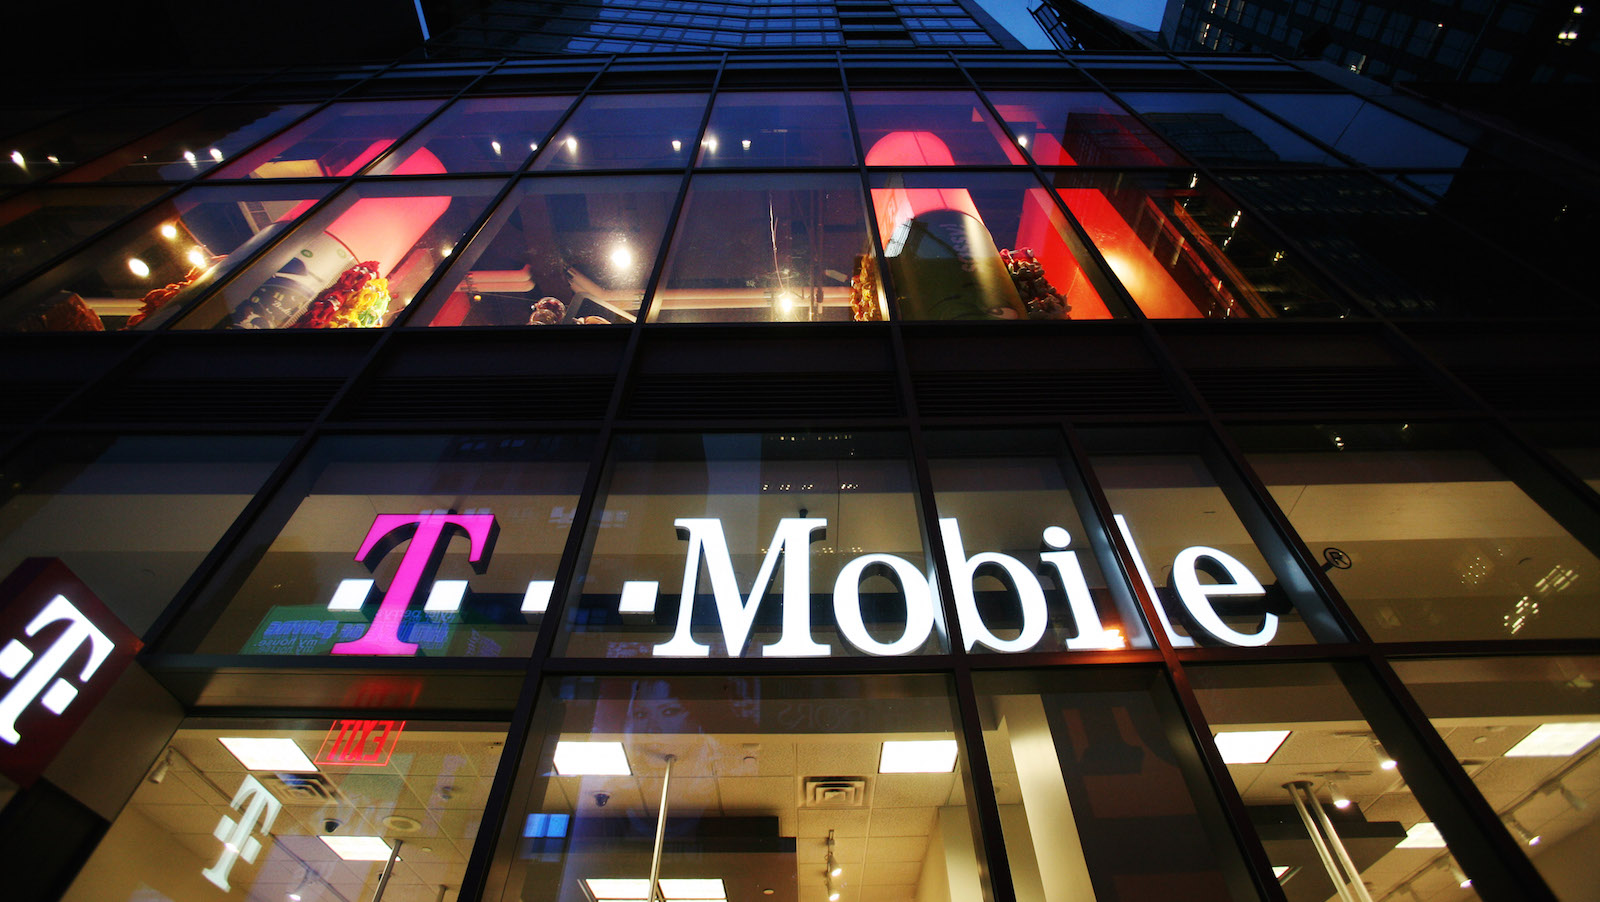 In this March 18, 2008 photo, a T-Mobile retail store is shown in Times Square in New York.  T-Mobile USA Inc. announced Thursday, March 22, 2012, that it is cutting 1,900 jobs nationwide as it consolidates its call centers in an effort to cut costs and remain competitive. The jobs represent nearly half of the total number of people it employs at its call centers. (AP Photo/Mark Lennihan)